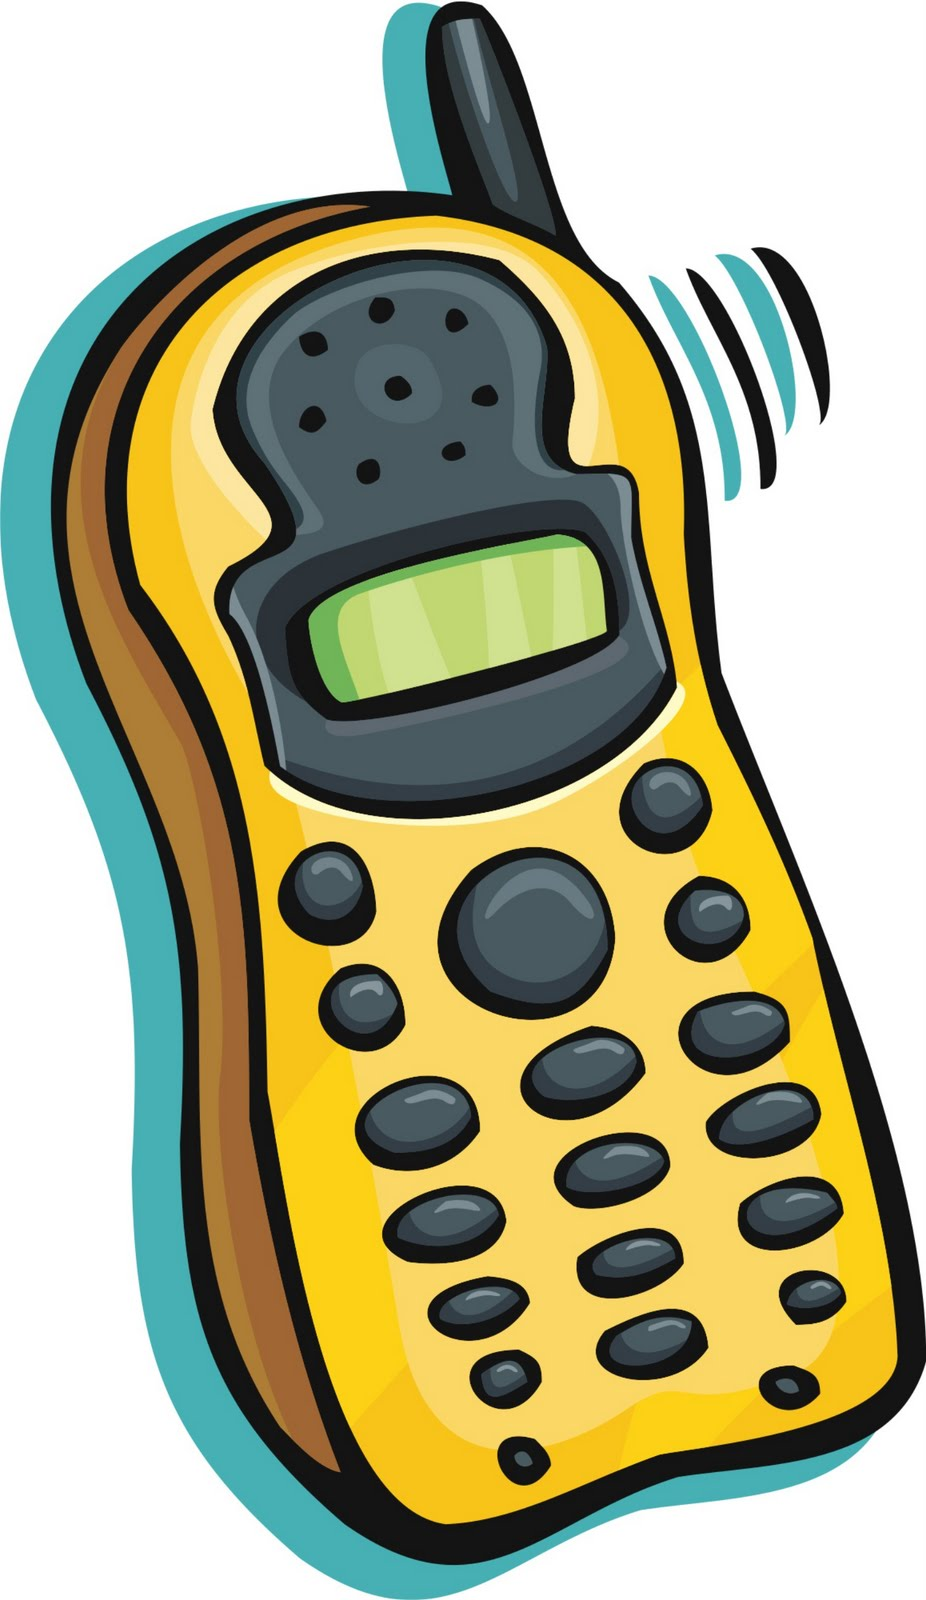 Phone call clipart free clipart images.